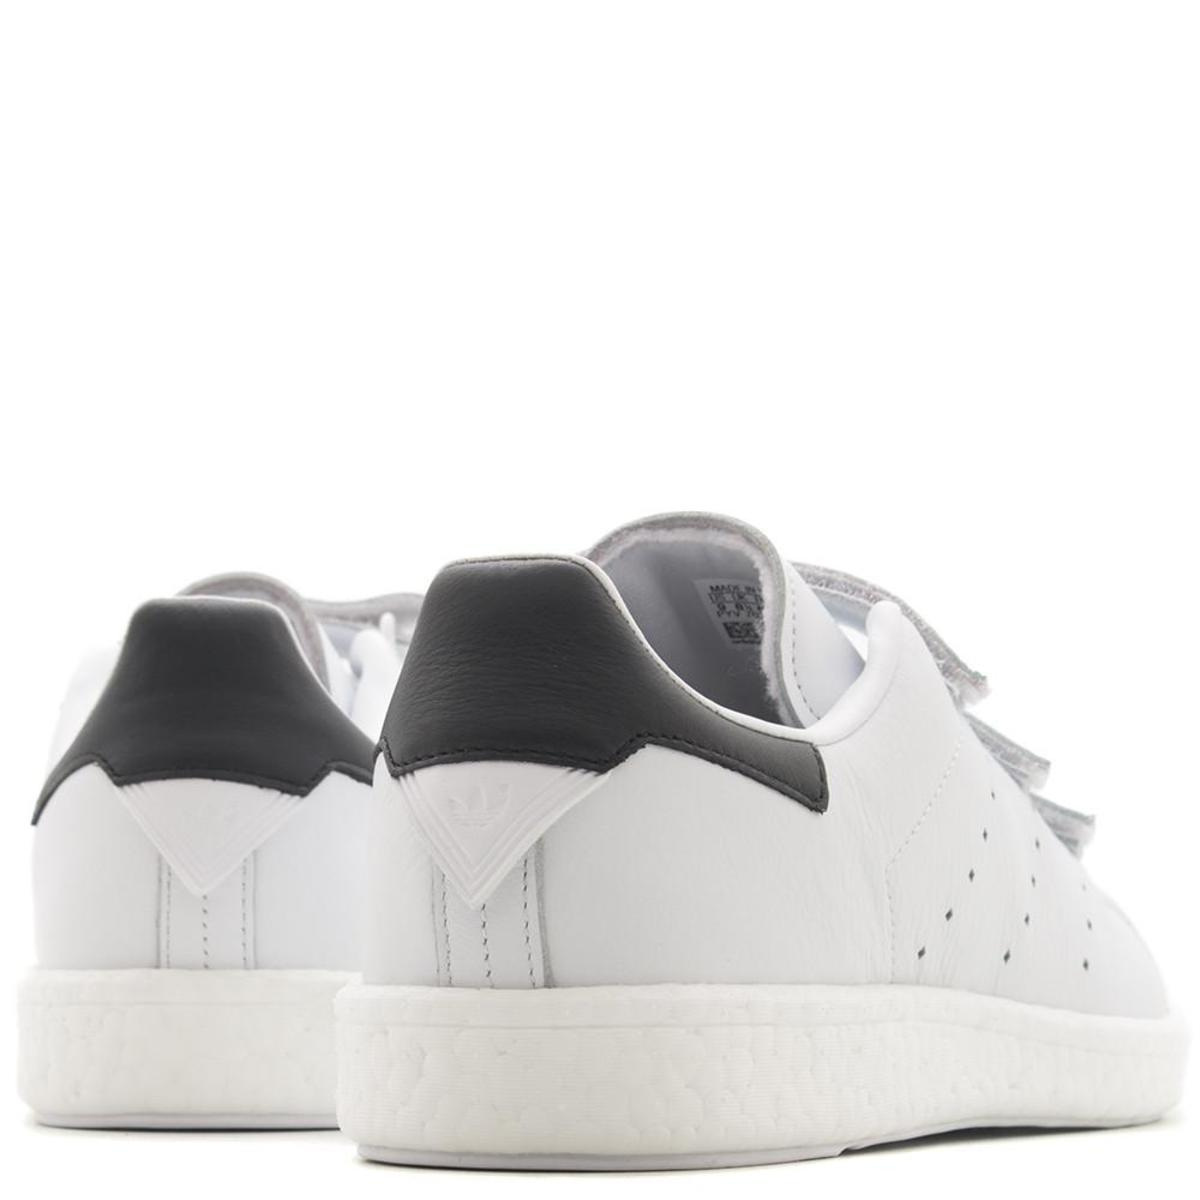 675518371d78 ADIDAS ORIGINALS BY WHITE MOUNTAINEERING STAN SMITH CF - WHITE ...